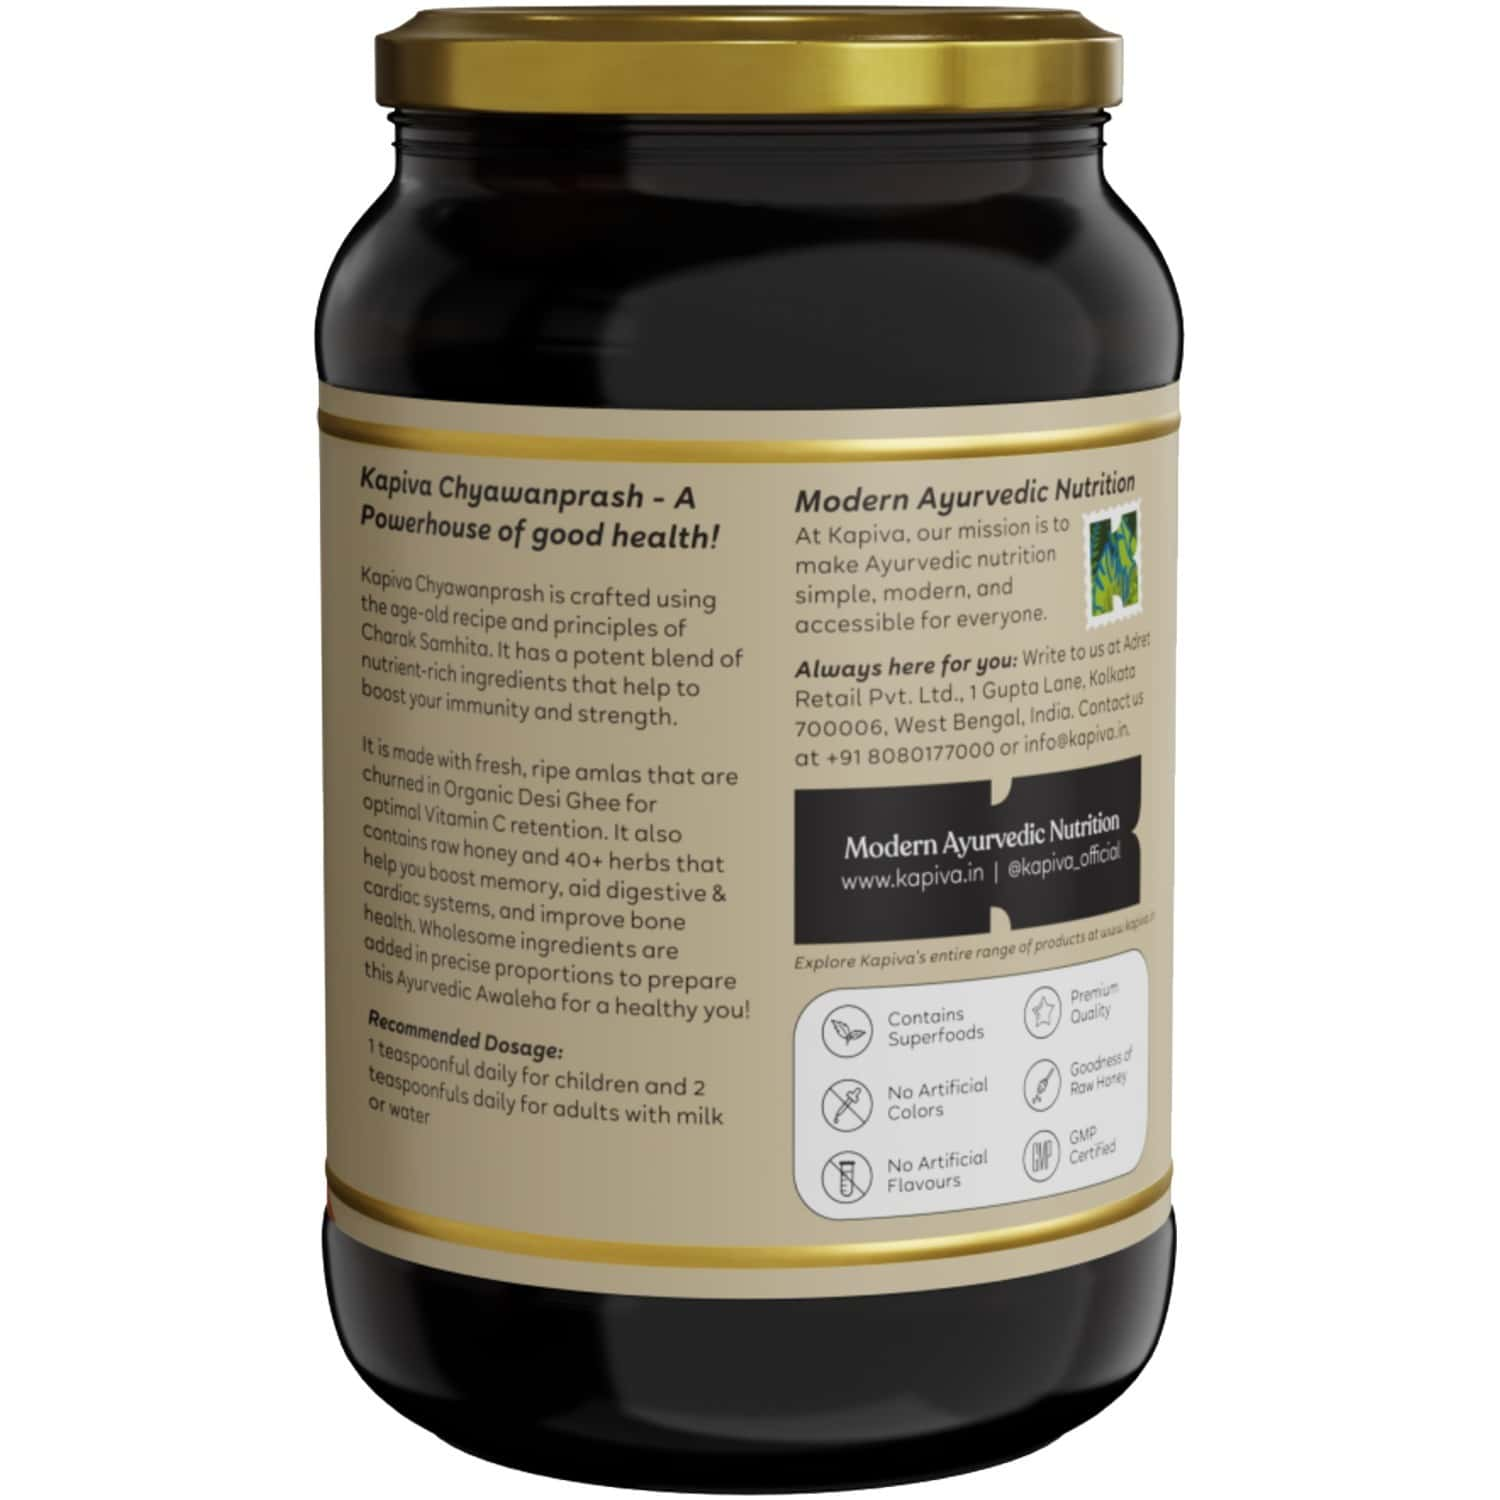 Kapiva Chyawanprash 500g- For Immunity And Daily Wellness With Organic Gheeraw Honey And 40+ Herbs   For Kids And Adults